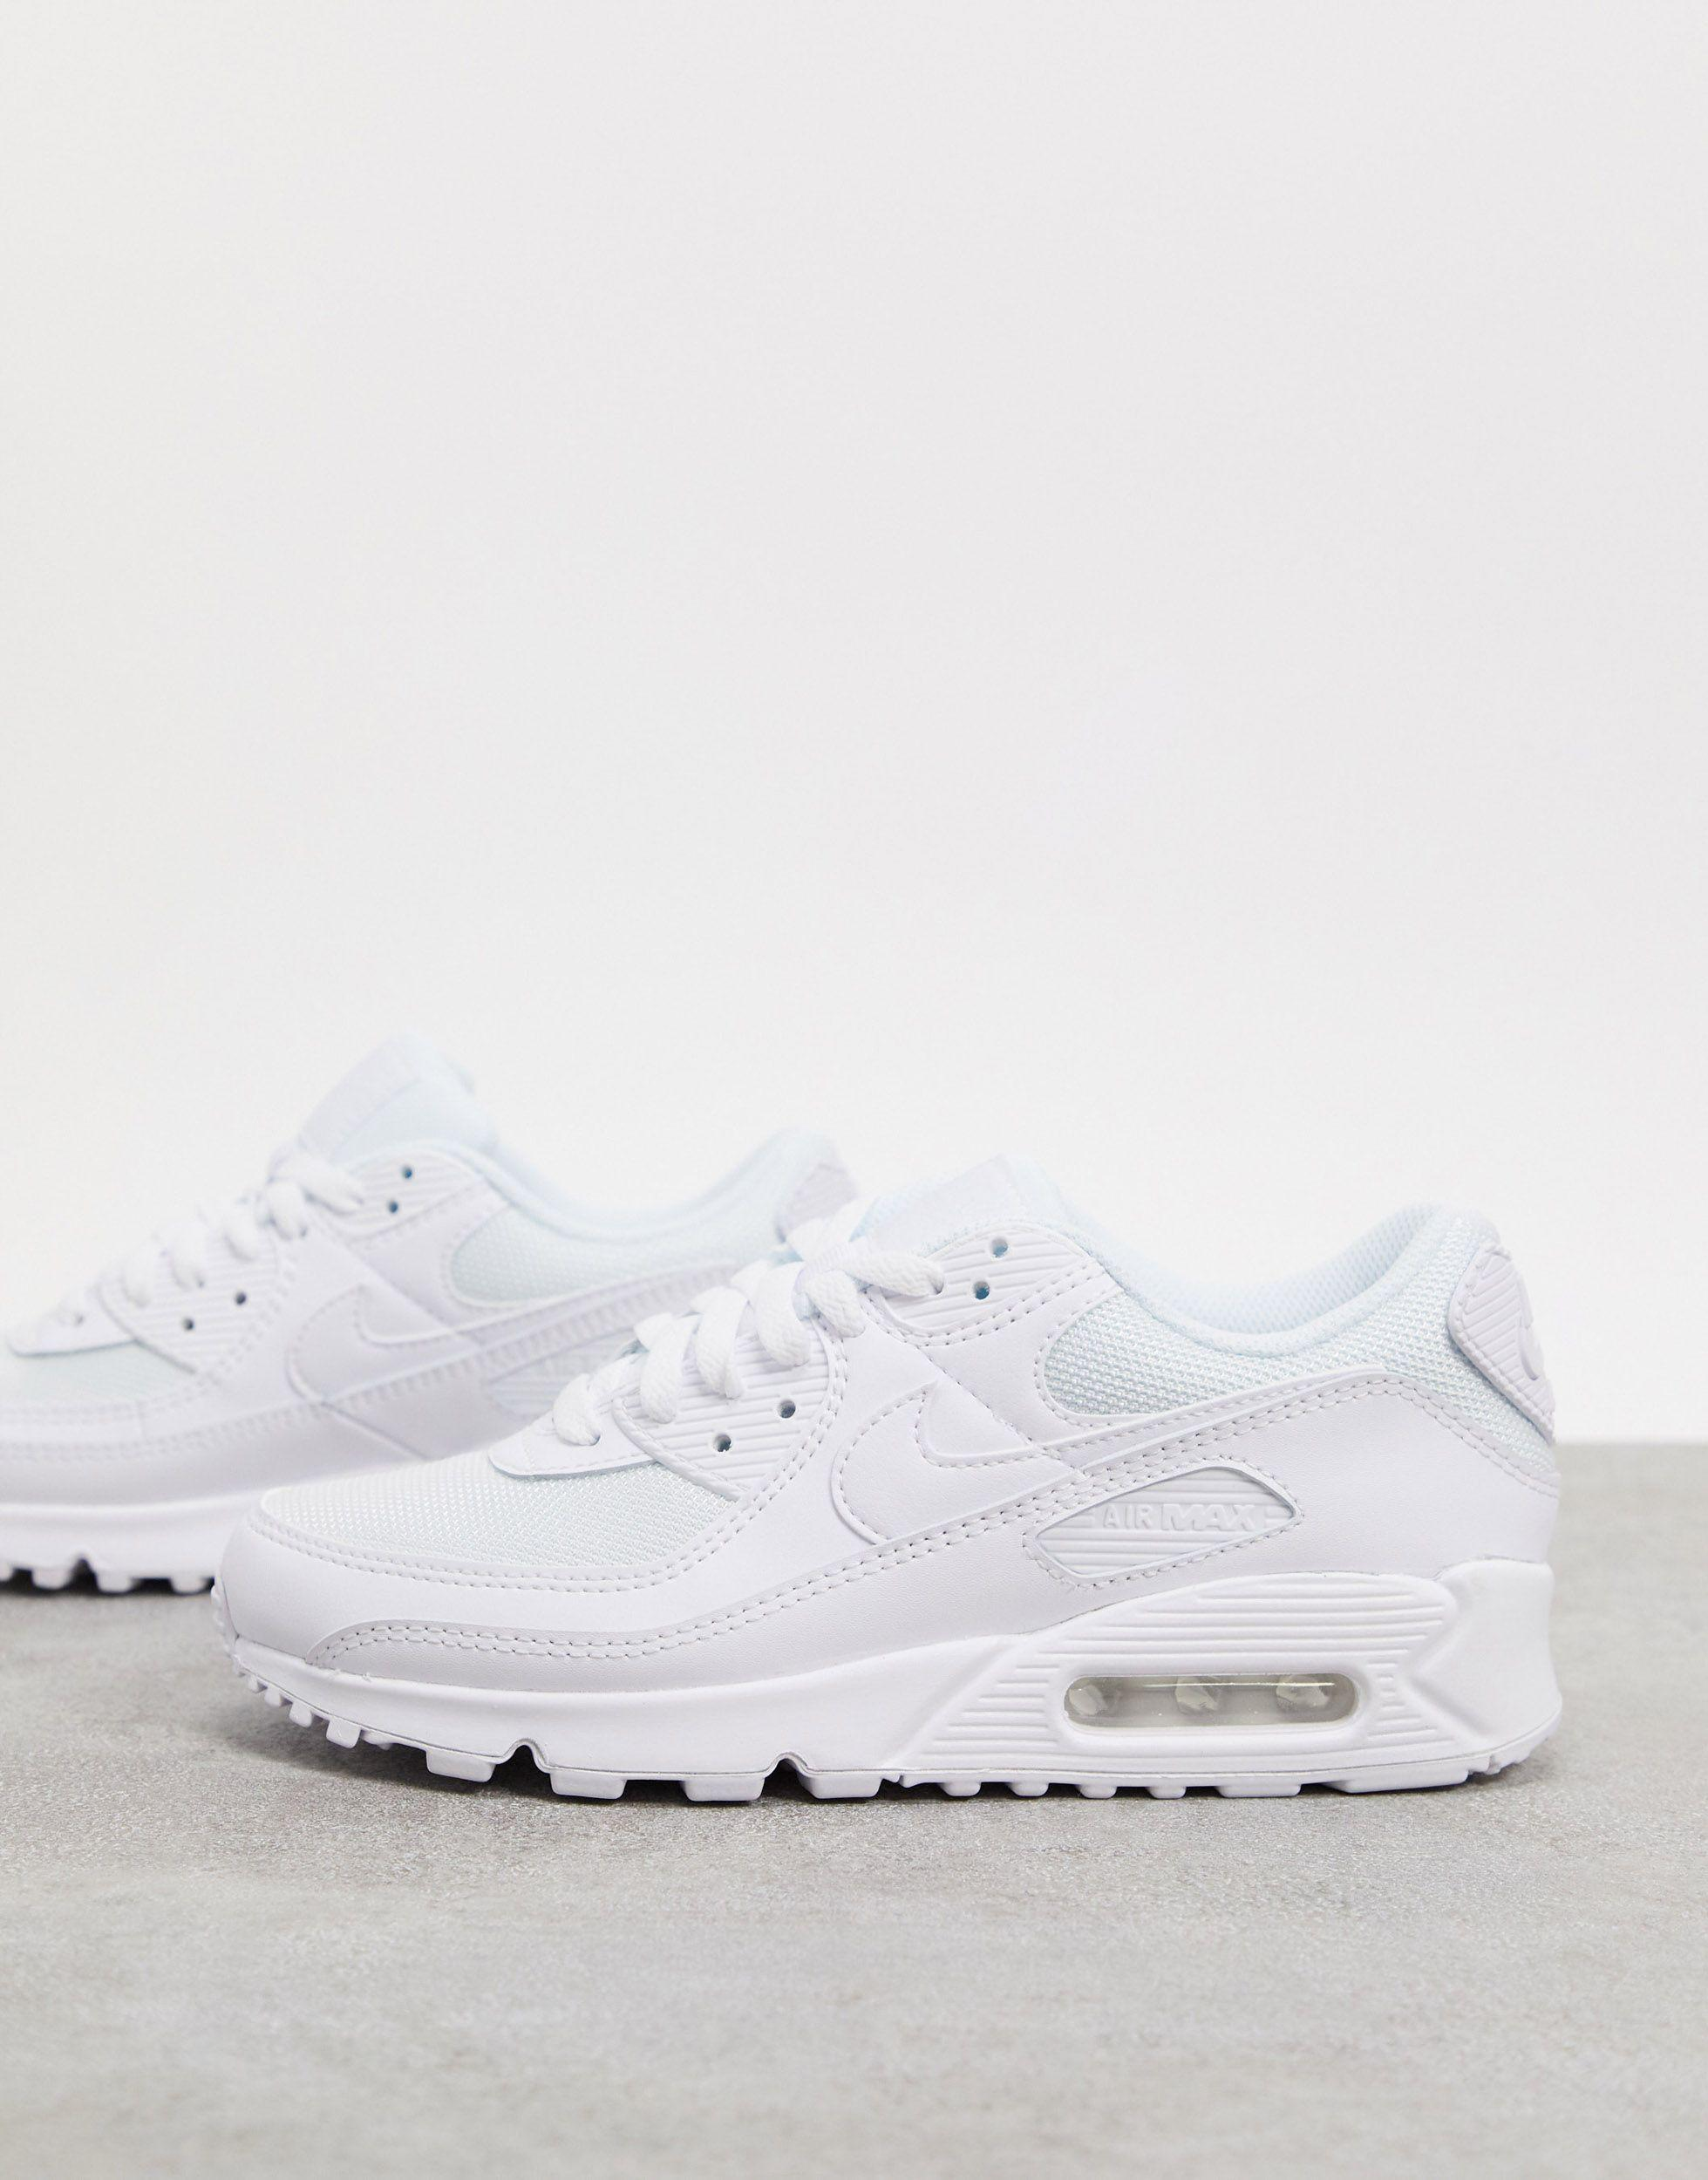 Nike Rubber Air Max 90 in White - Lyst